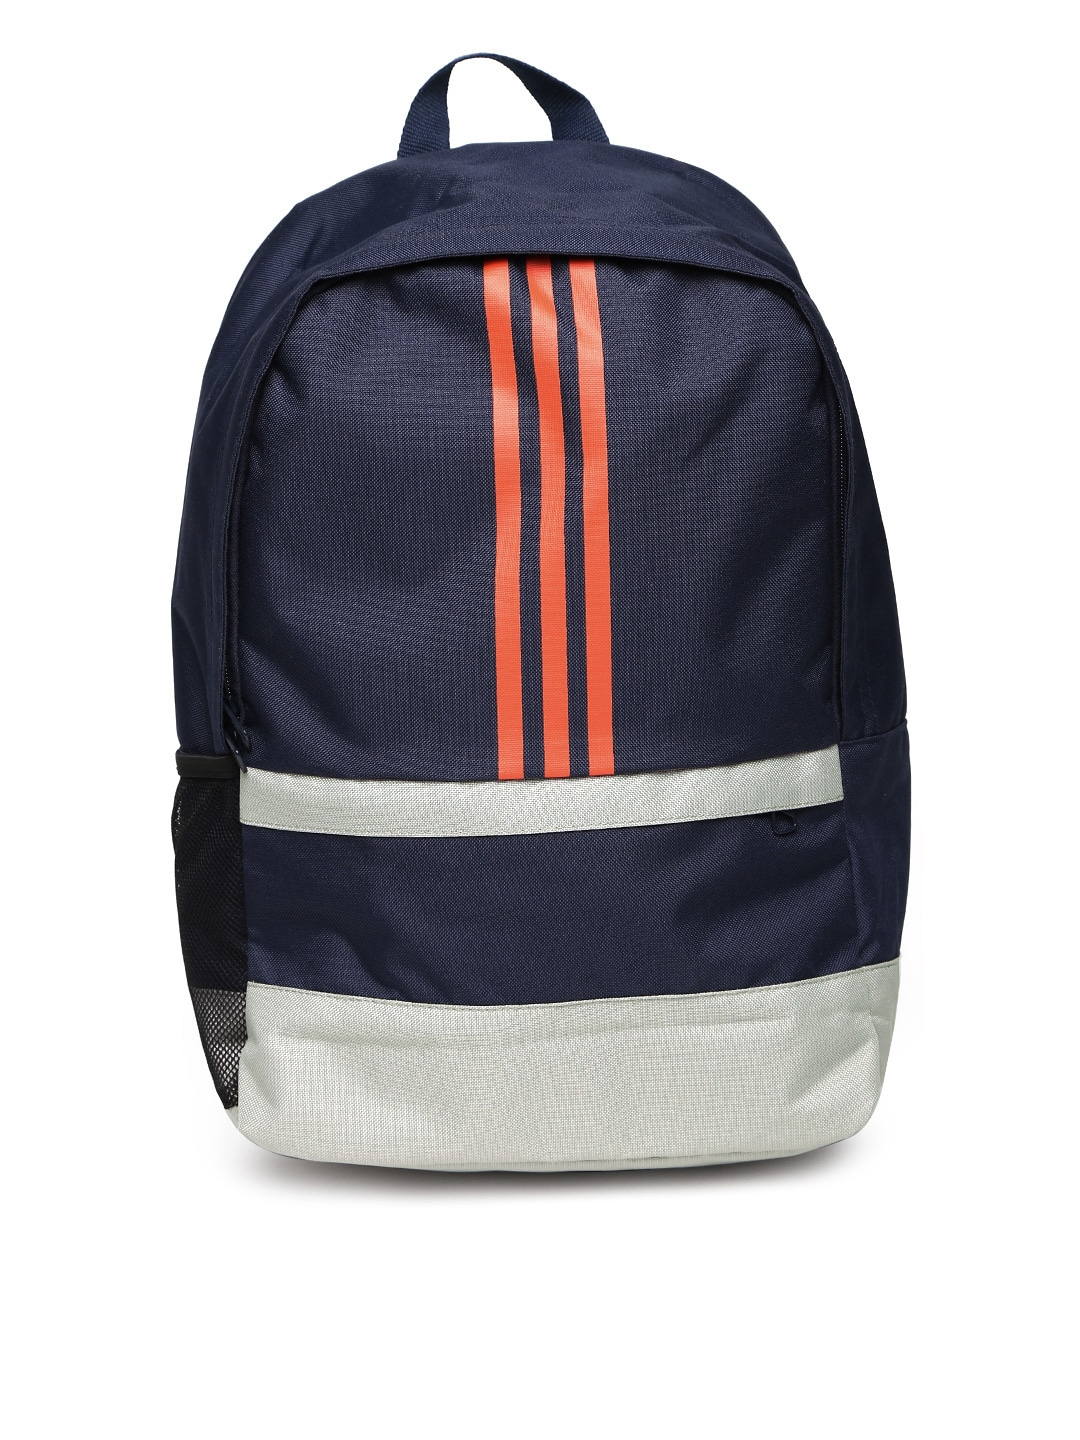 Adidas m66767 Unisex Navy Versatile 3s Backpack - Best Price in ... 2dfb8a33c6bbe